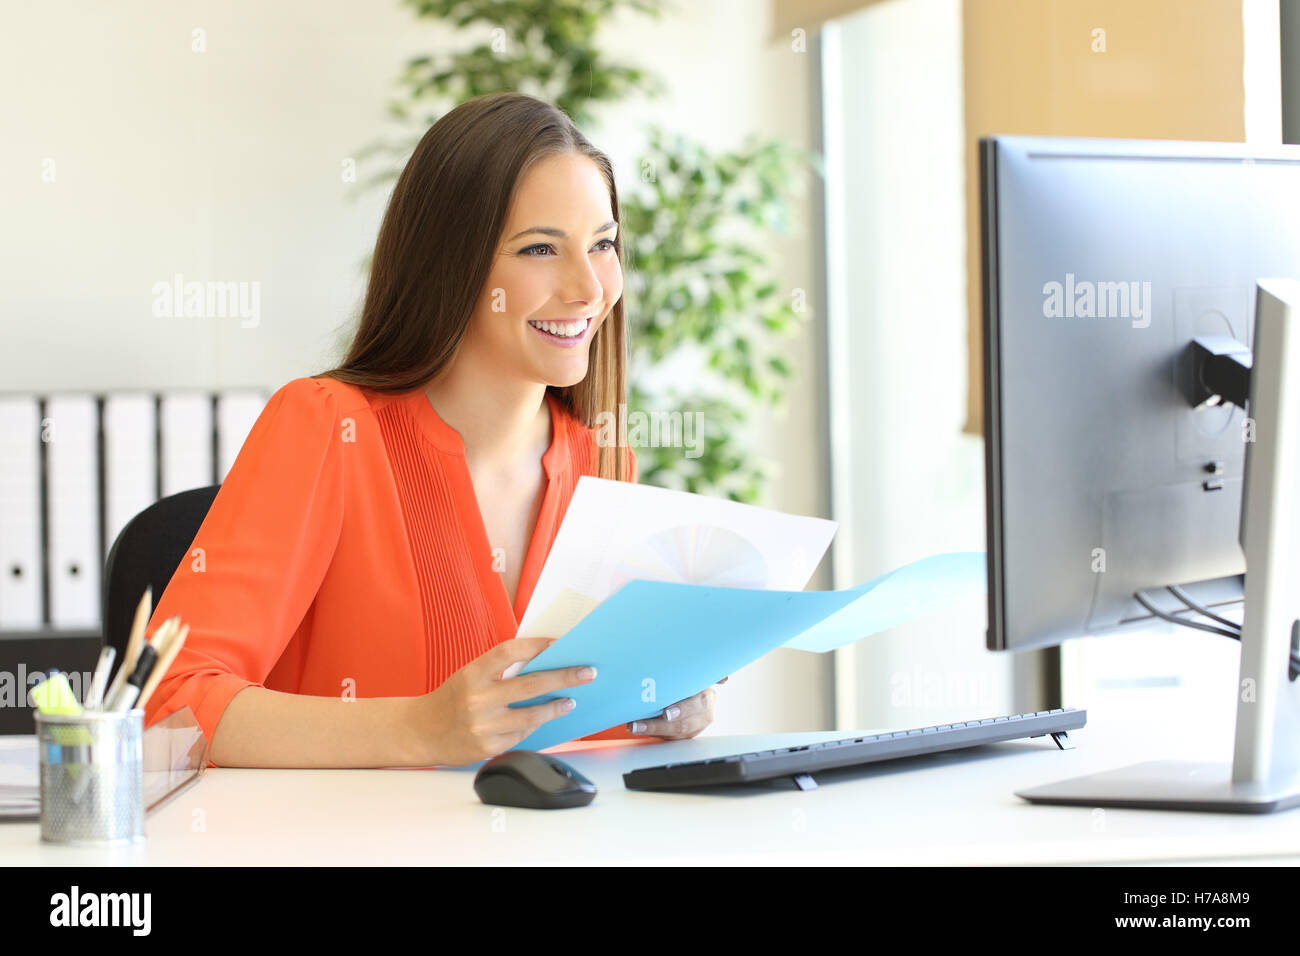 Entrepreneur or executive working comparing documents with a computer sitting in a desk at office - Stock Image